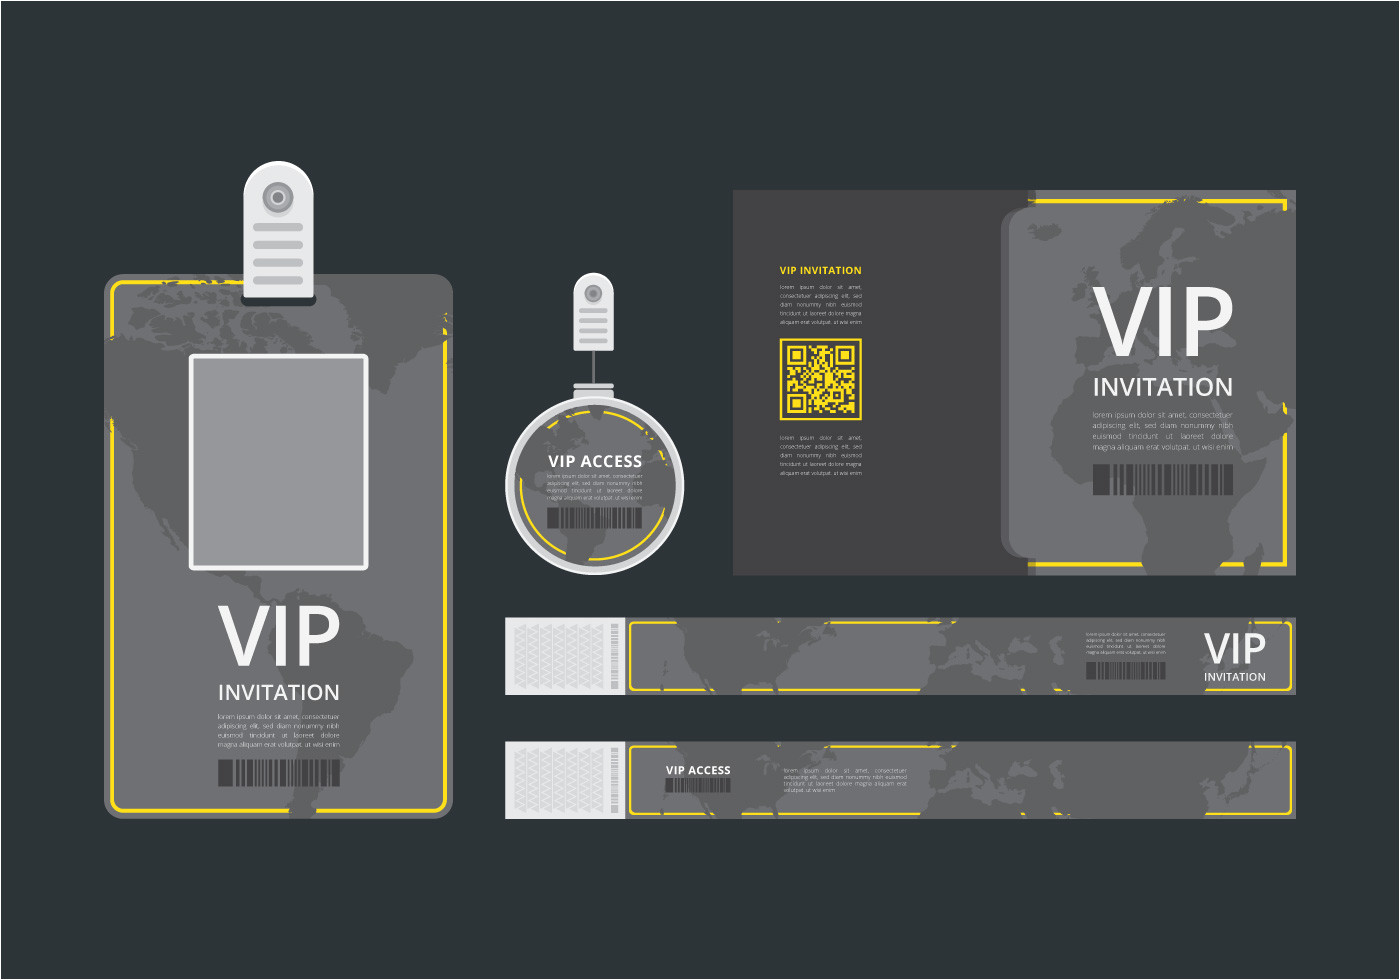 vip pass id card template vip pass for event template flat blank vertical id with yellow lines mockup jpg